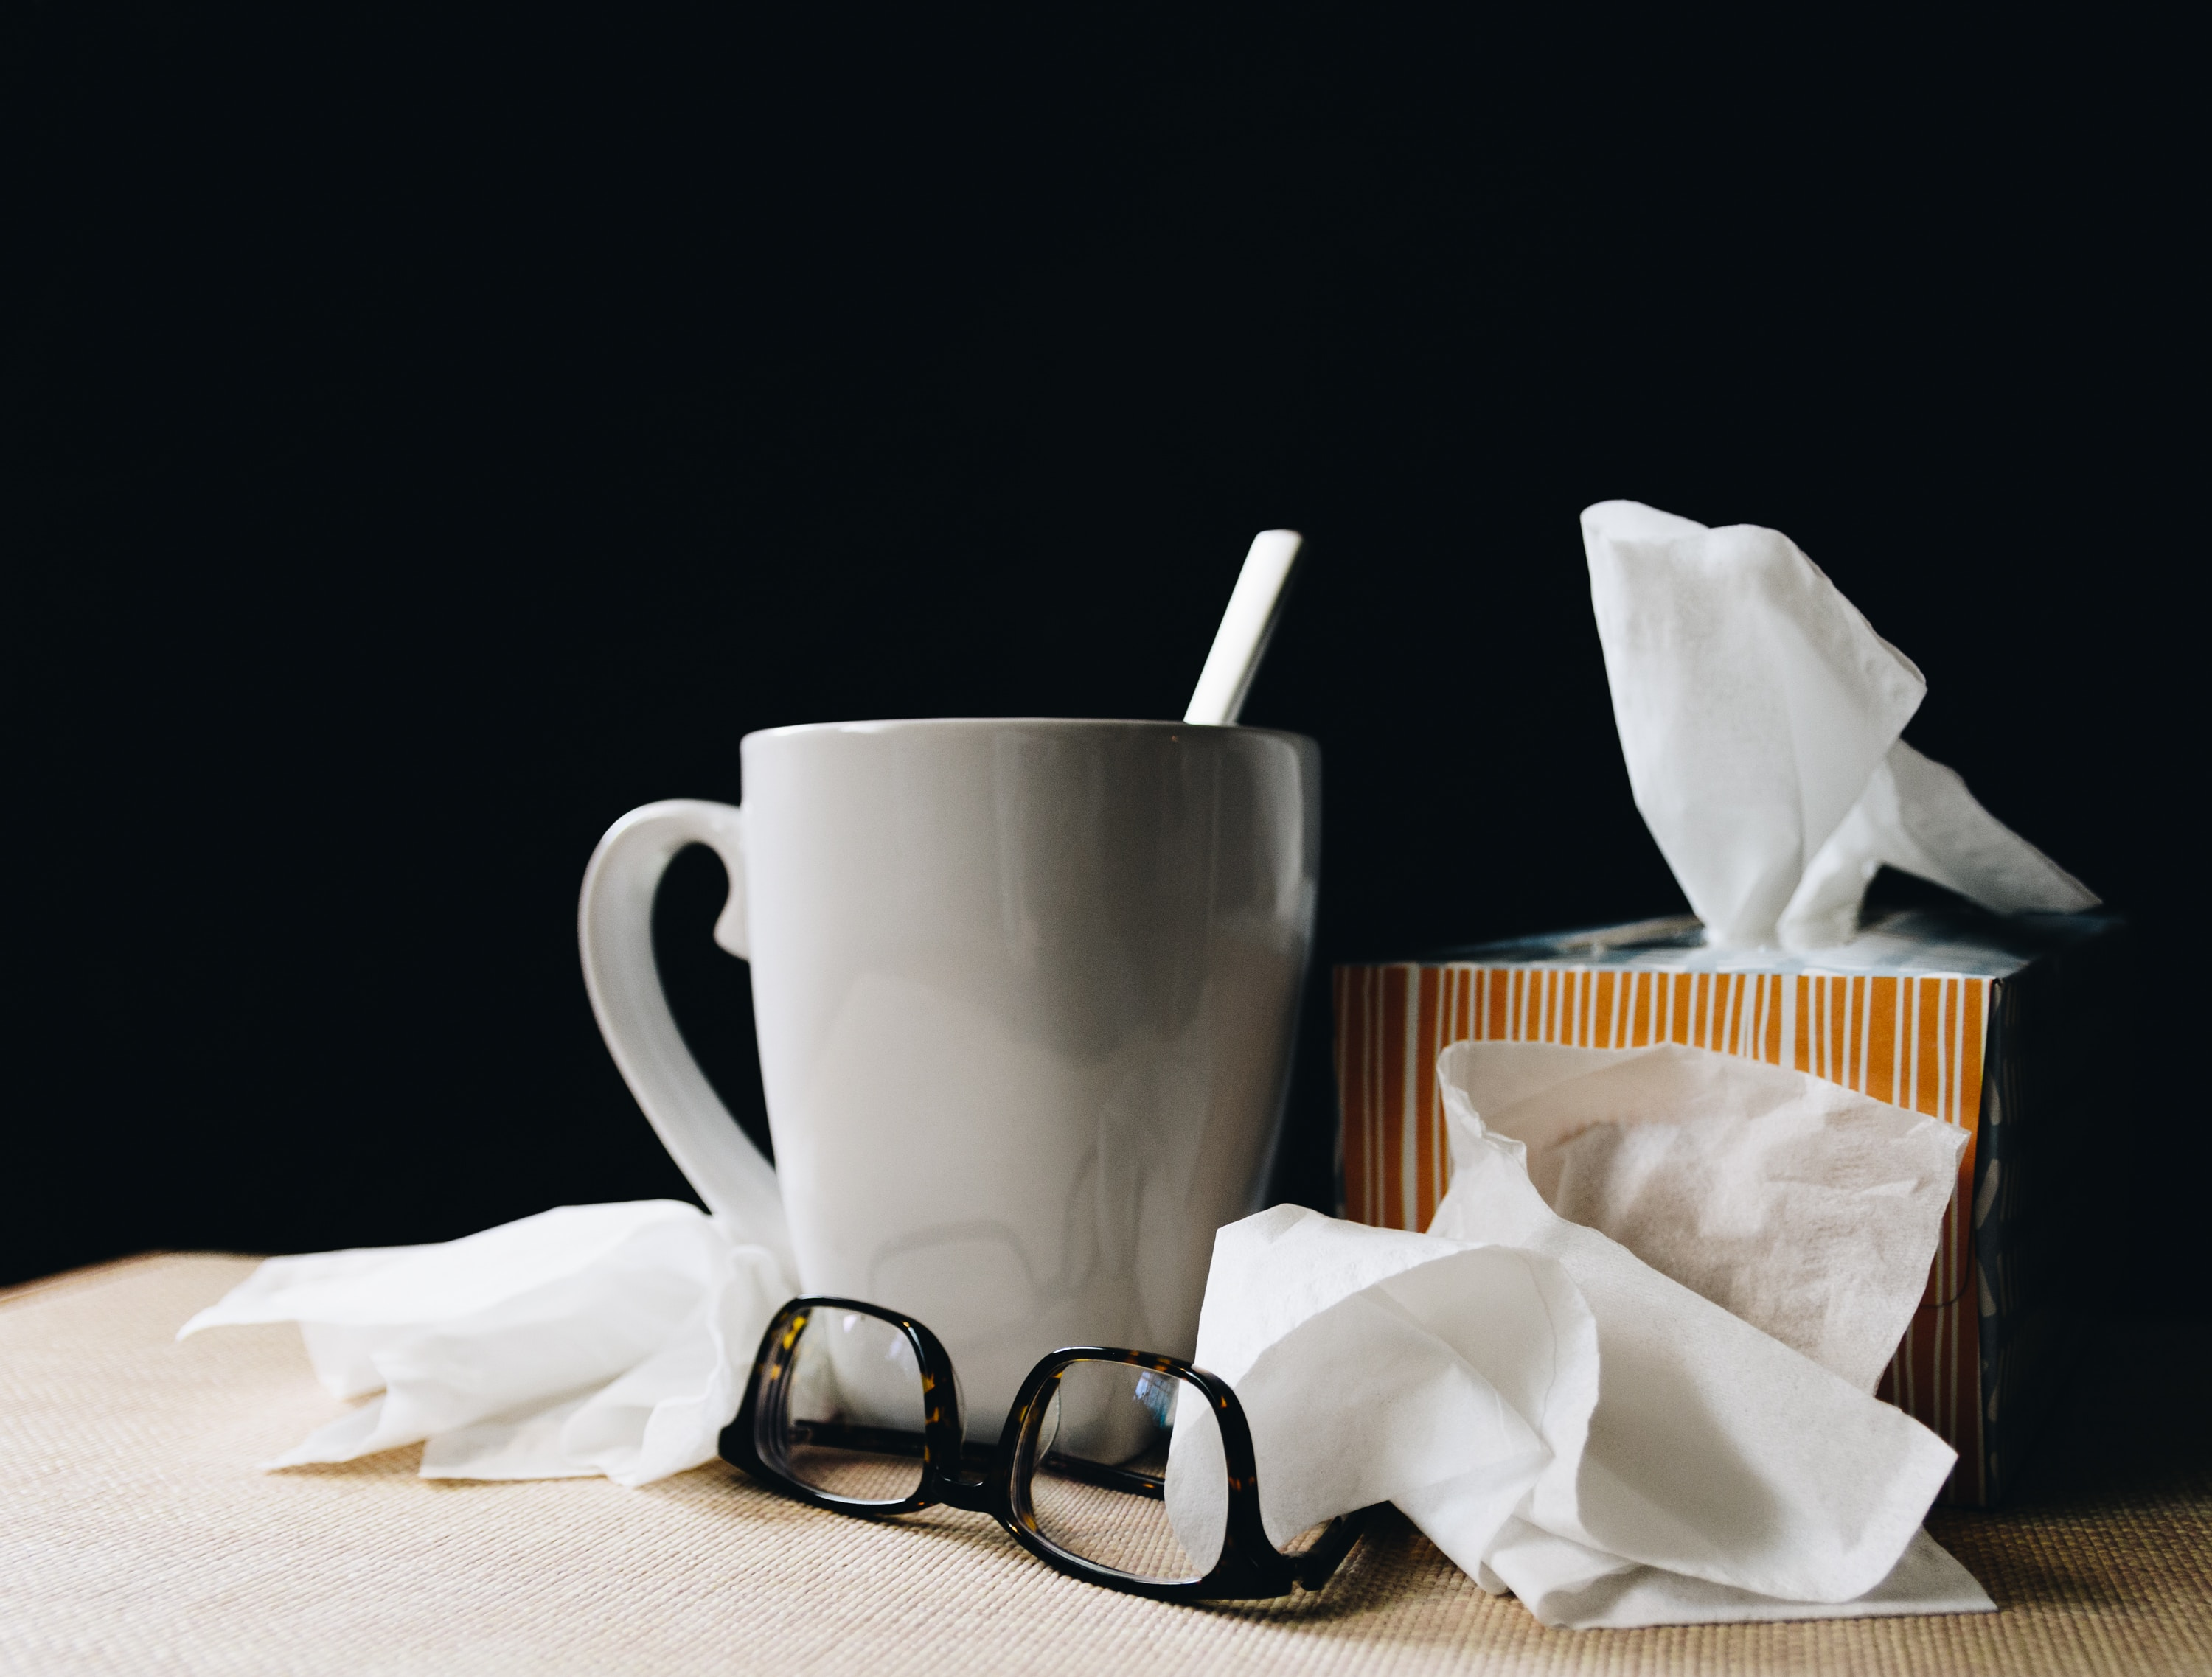 7 Easy Tips For Staying Healthy This Cold And Flu Season